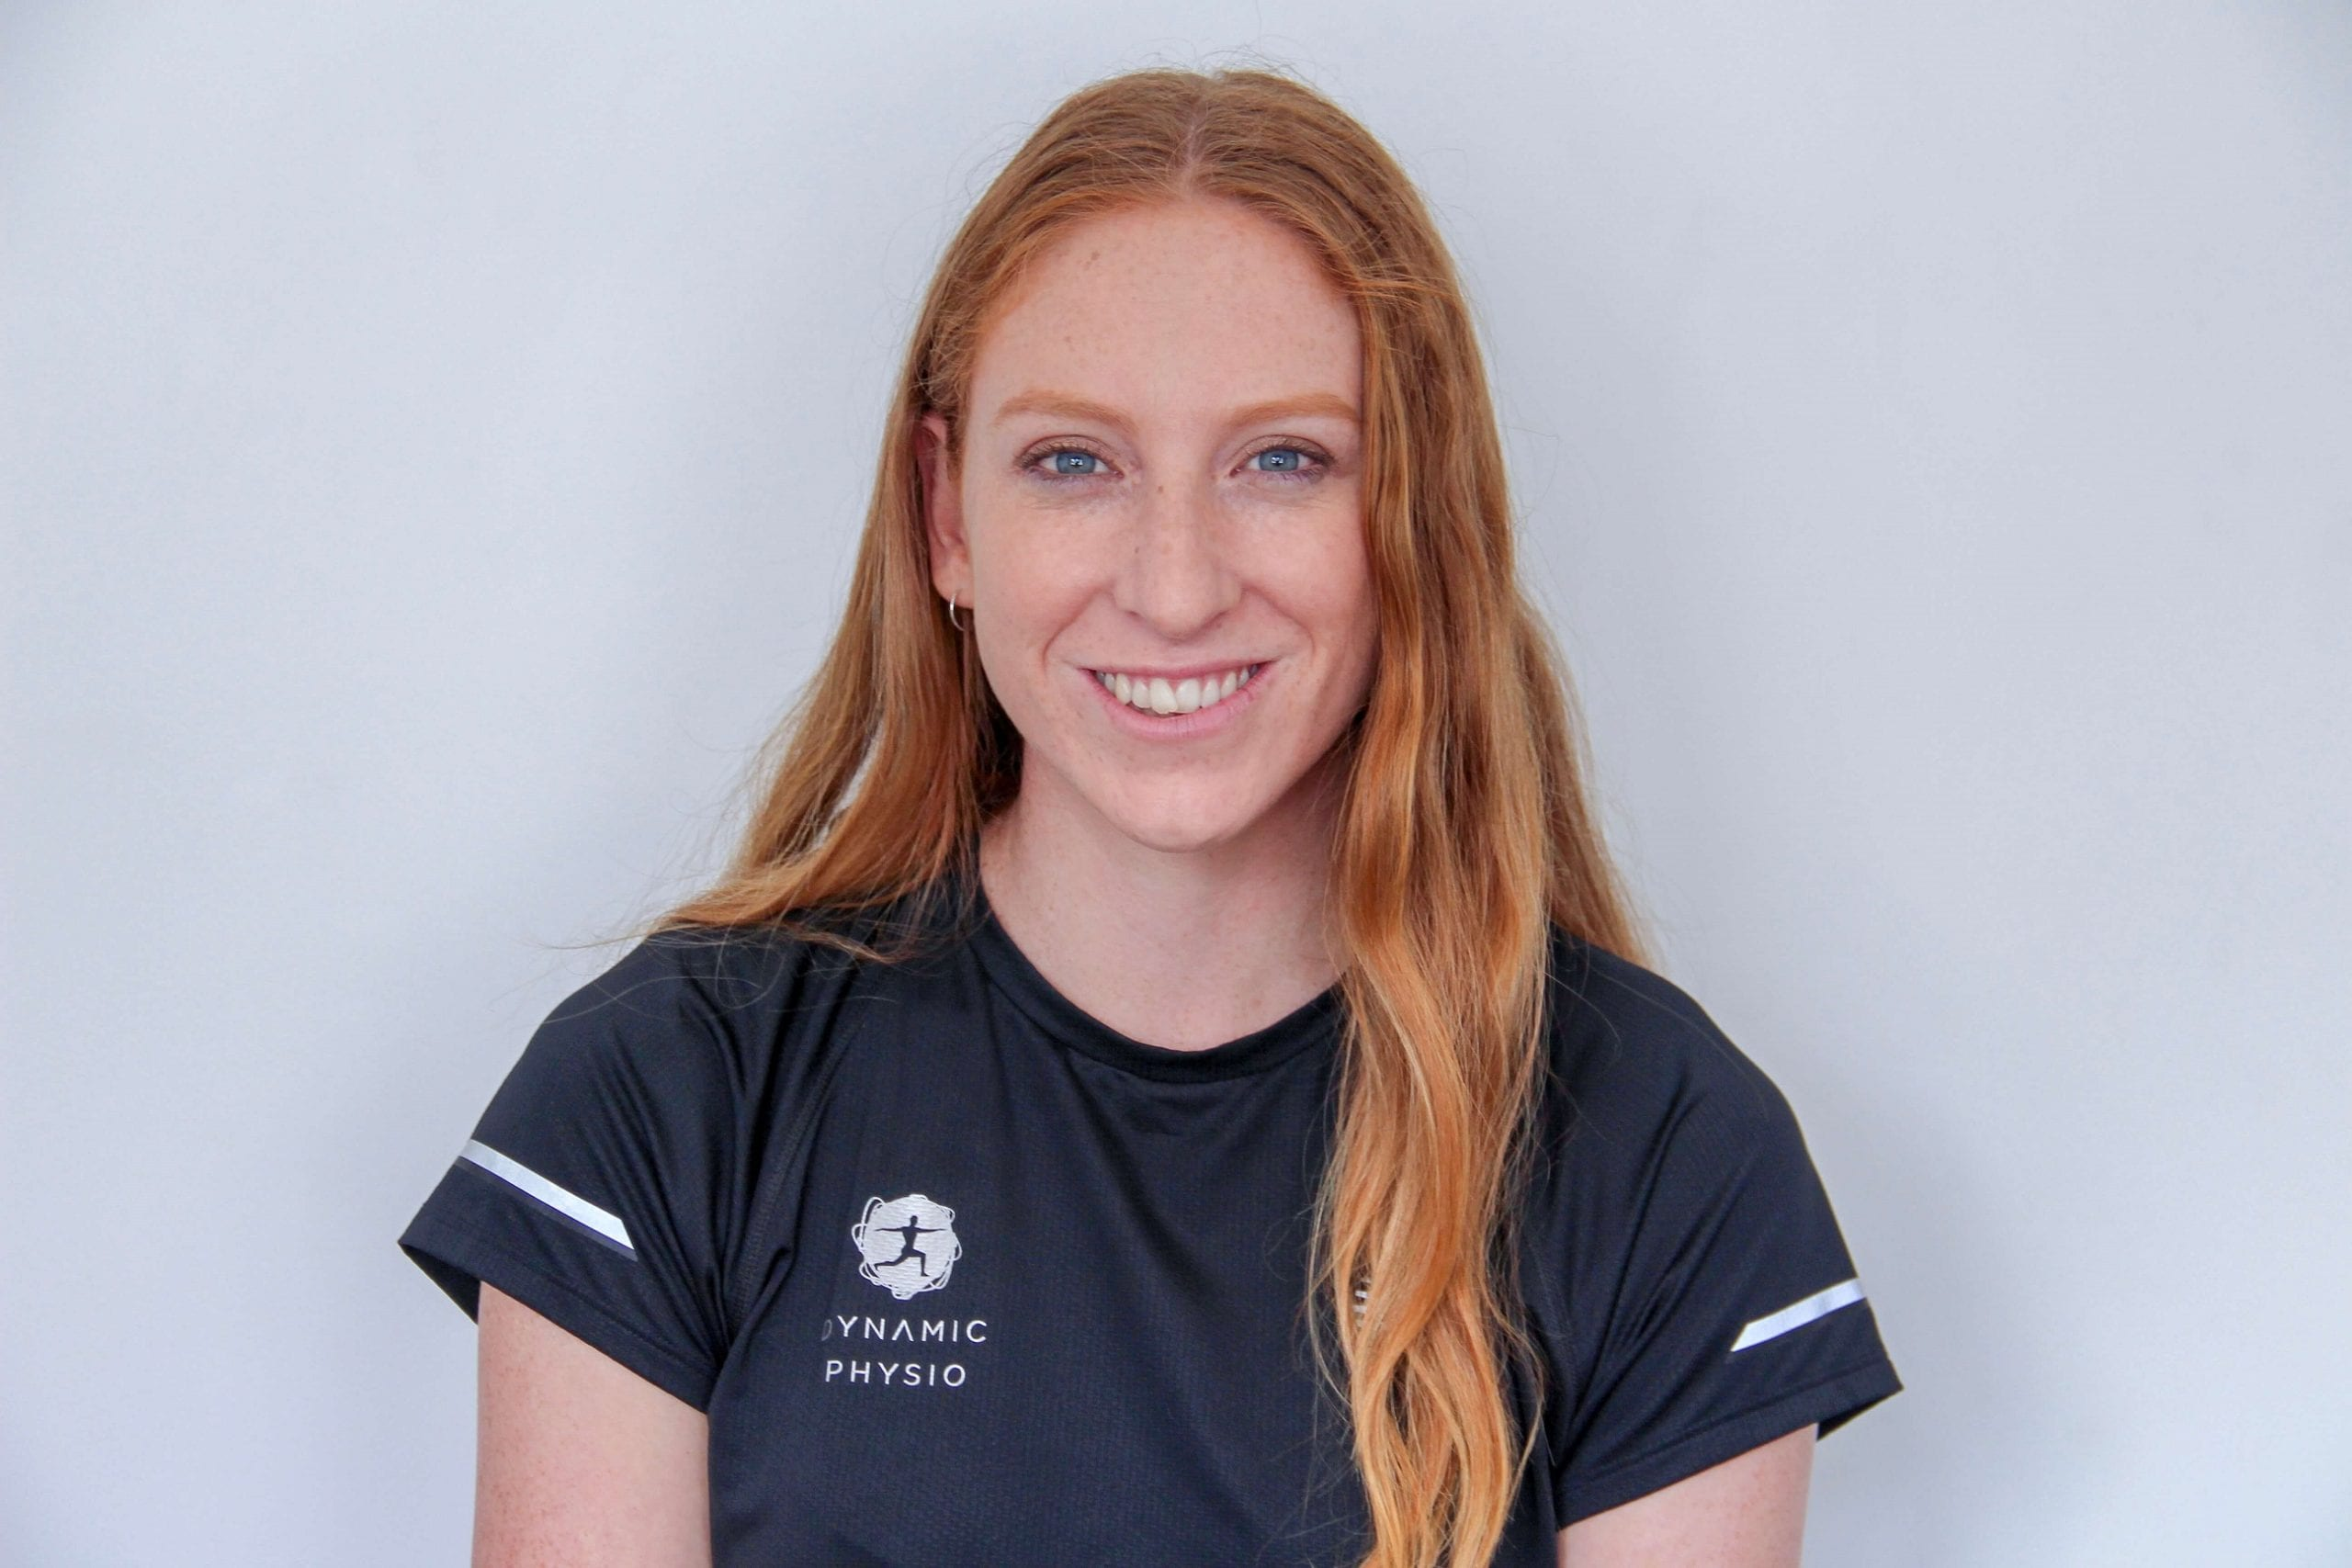 Chelsea Jeffries - Physiotherapist